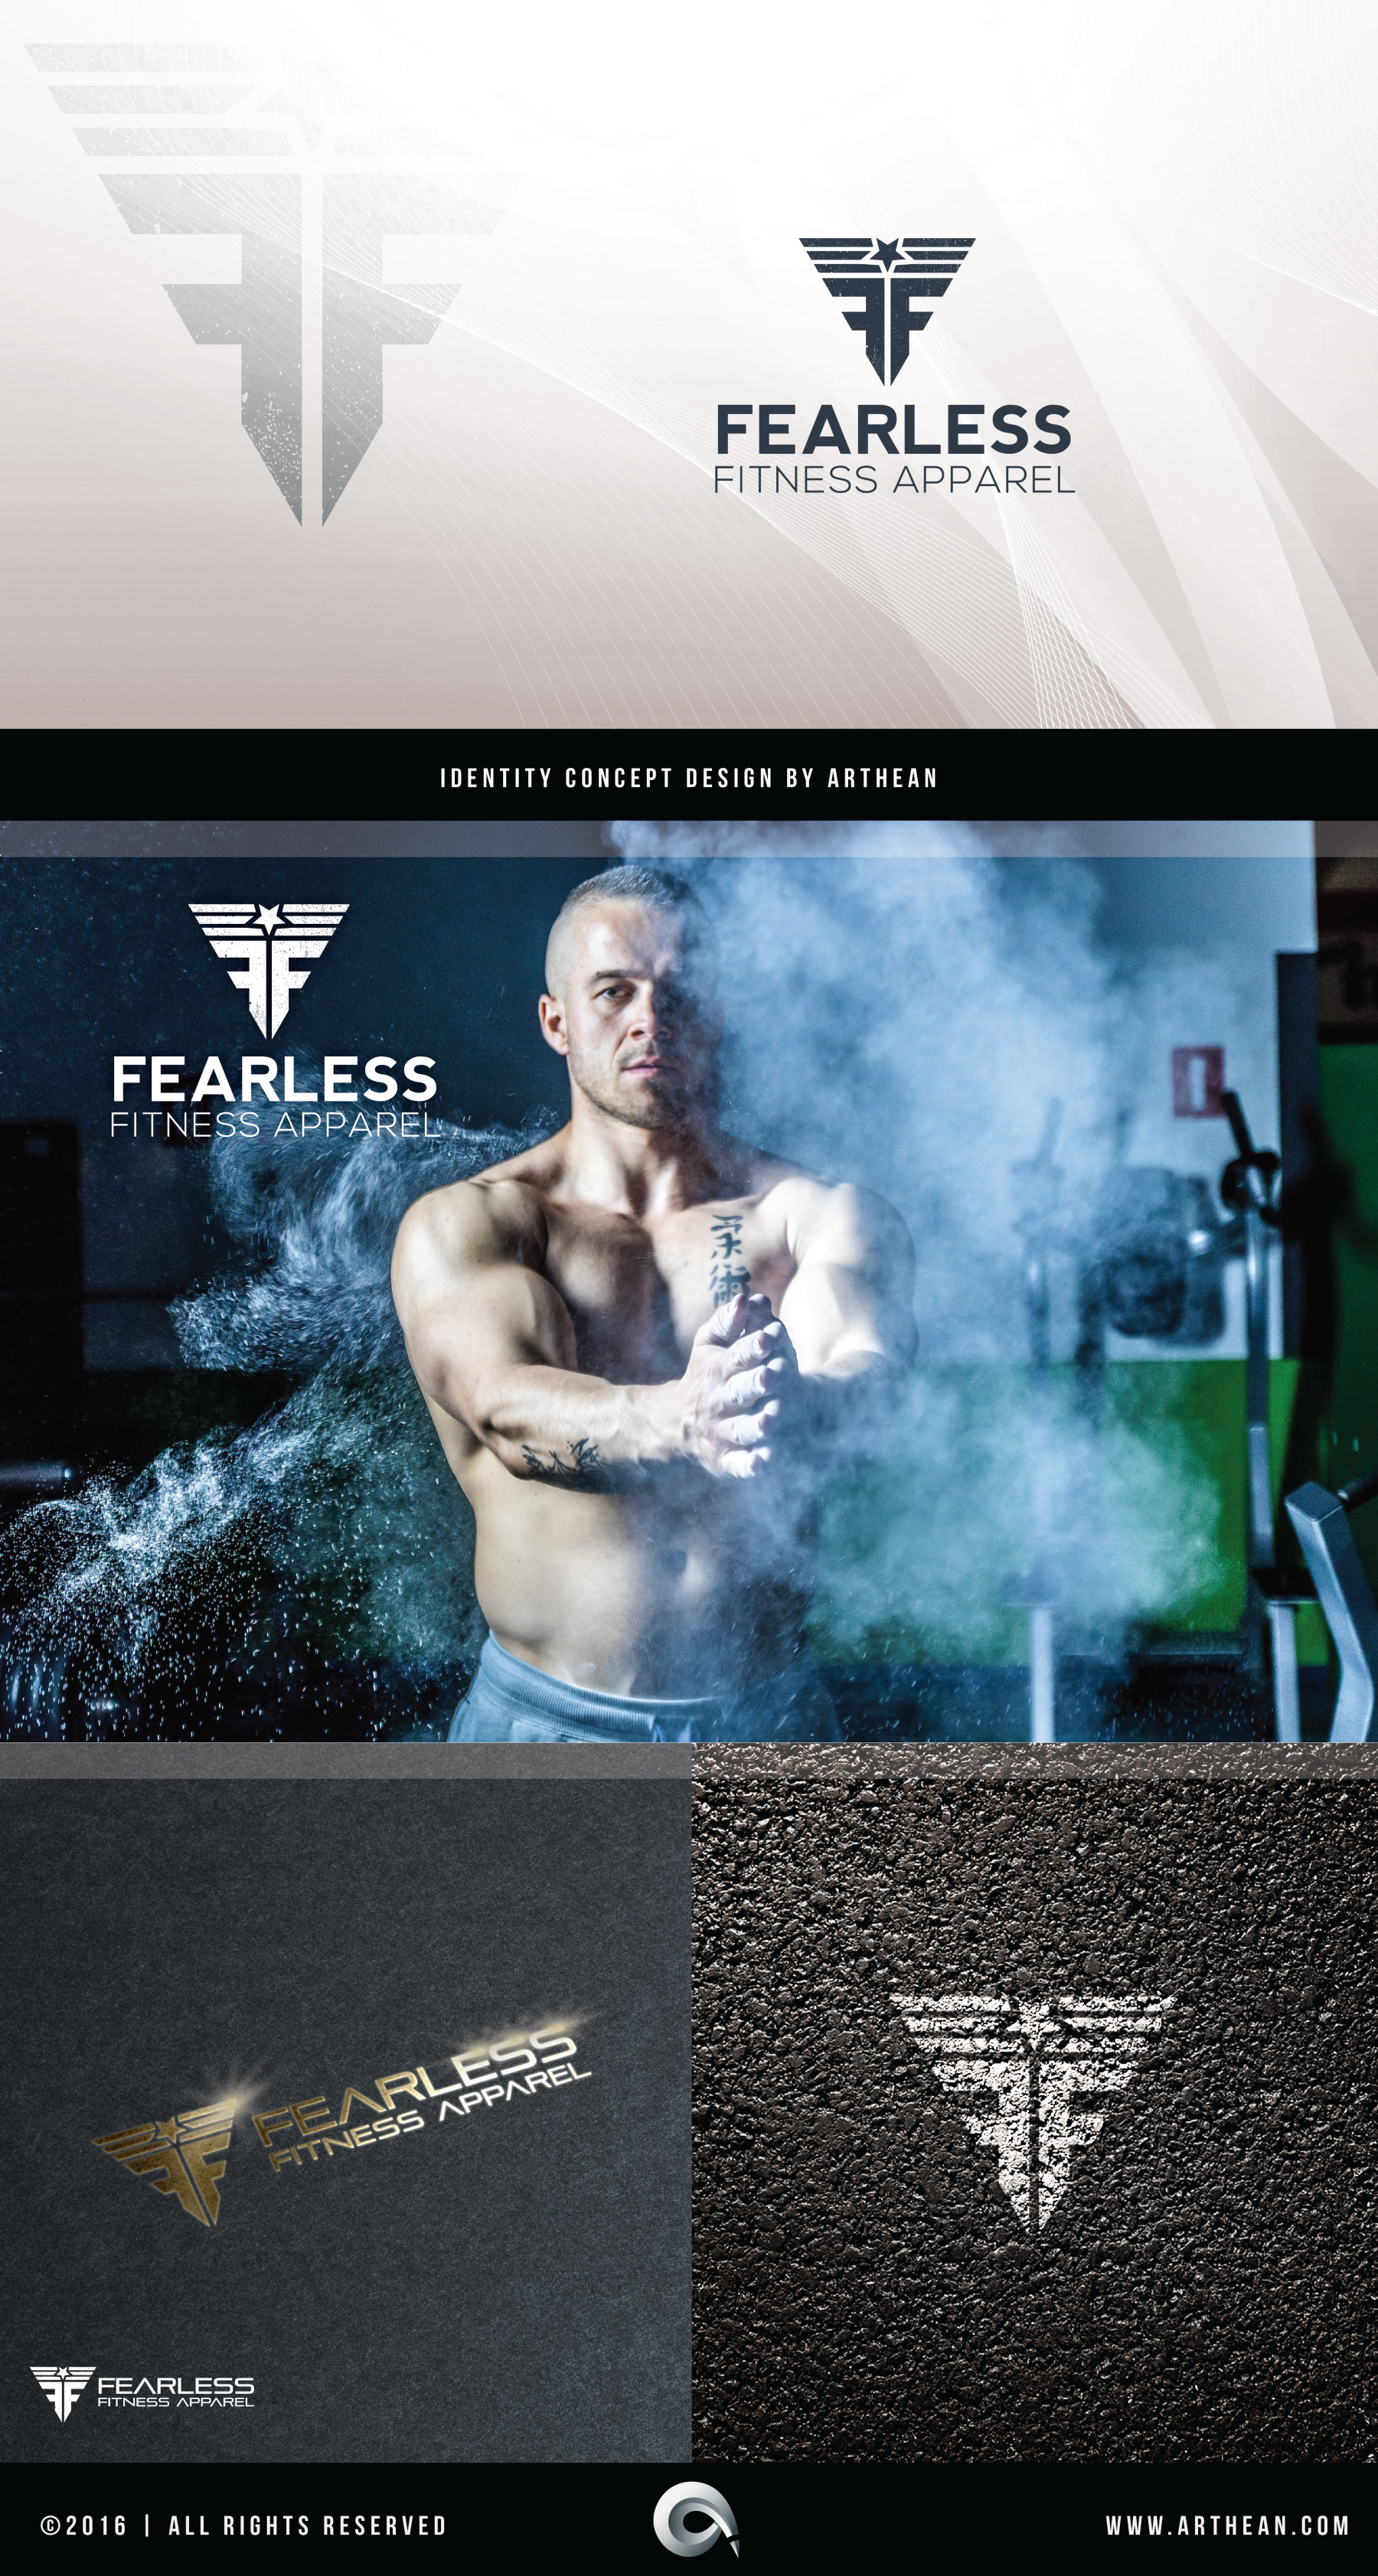 Fearless Fitness Apparel